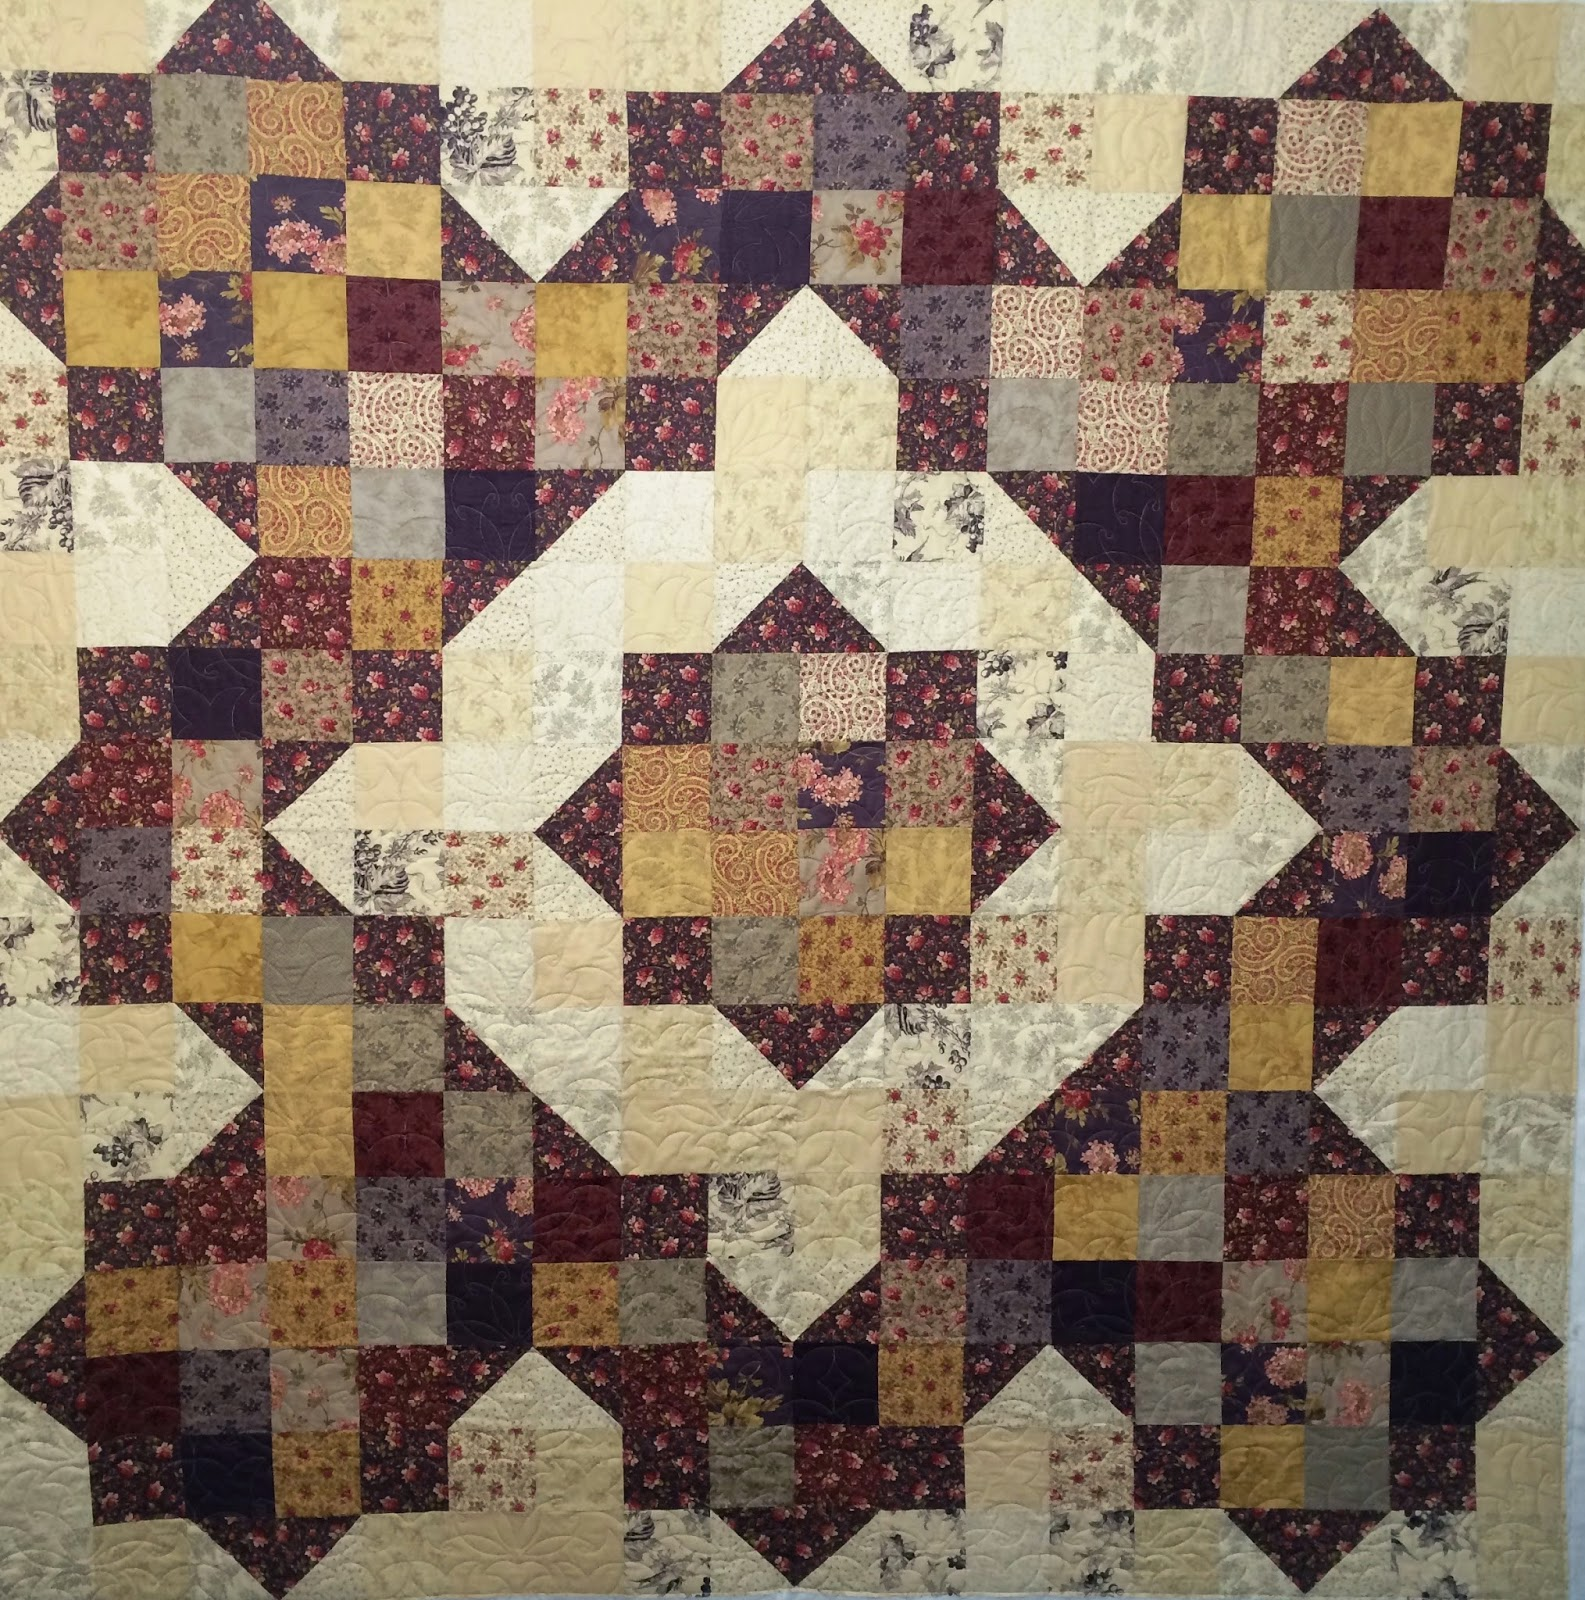 Carolyn Rucker's Marmalade Cake Quilt